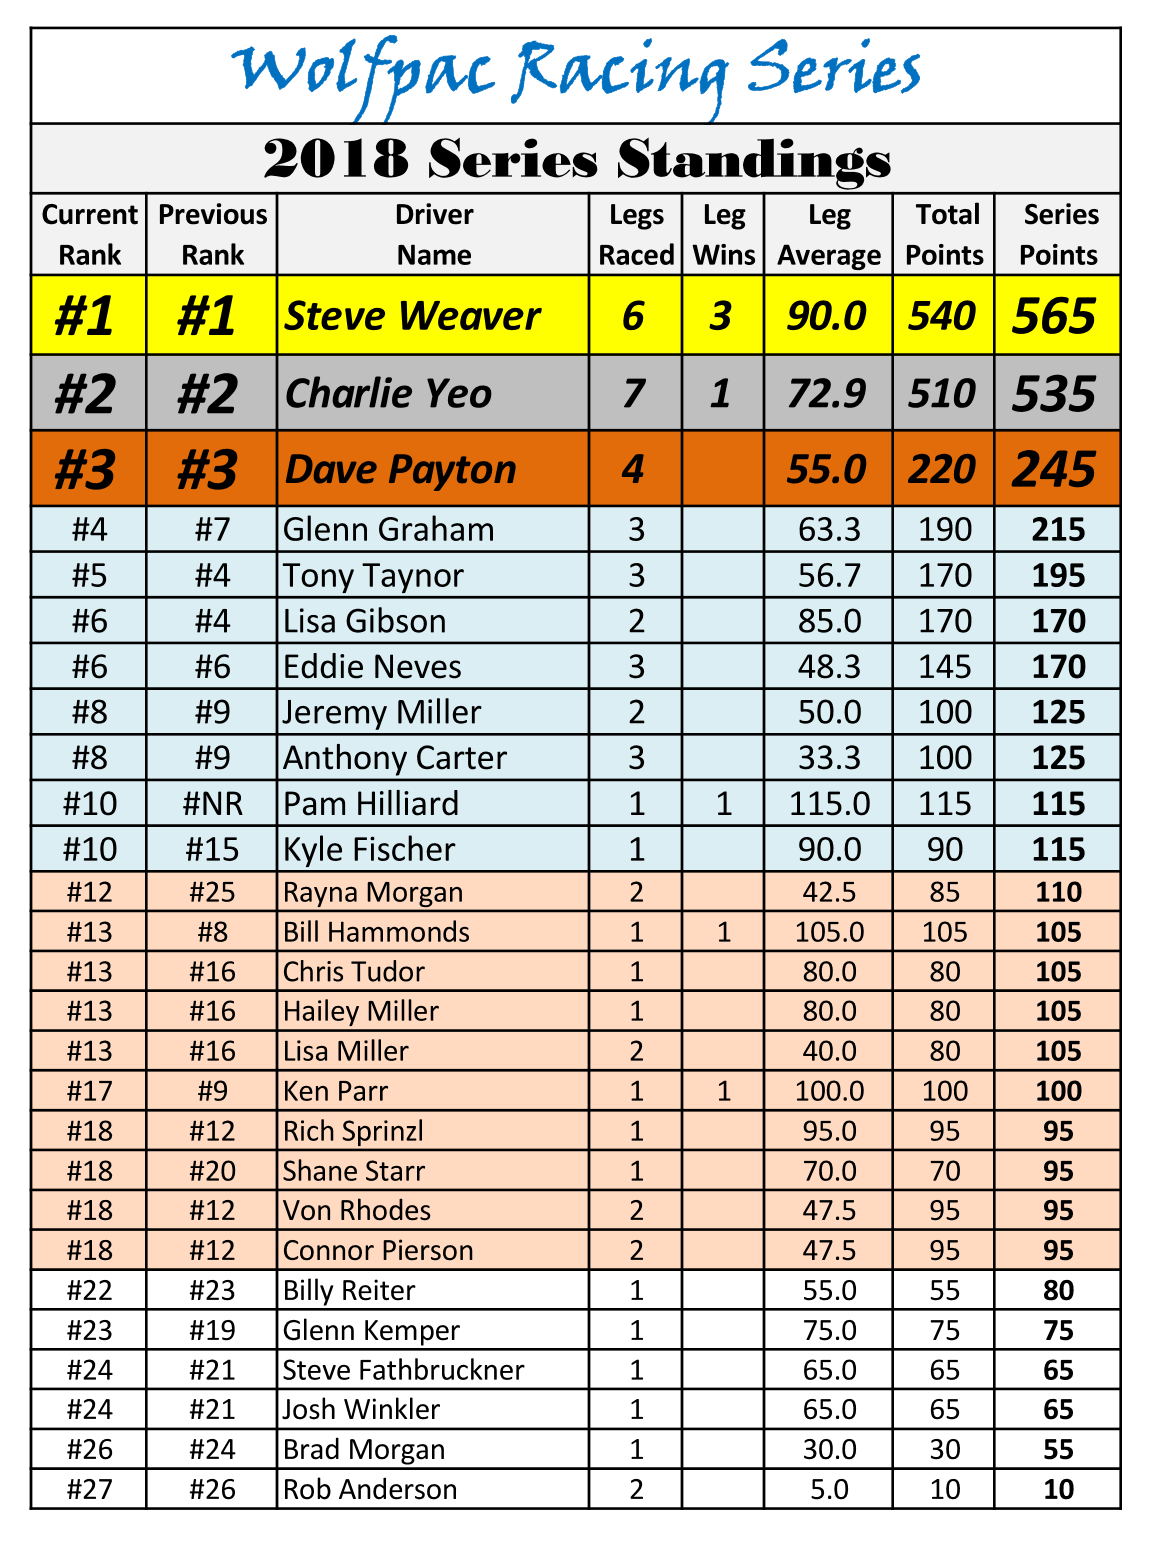 2018 Wolfpac Racing Series Standings.png